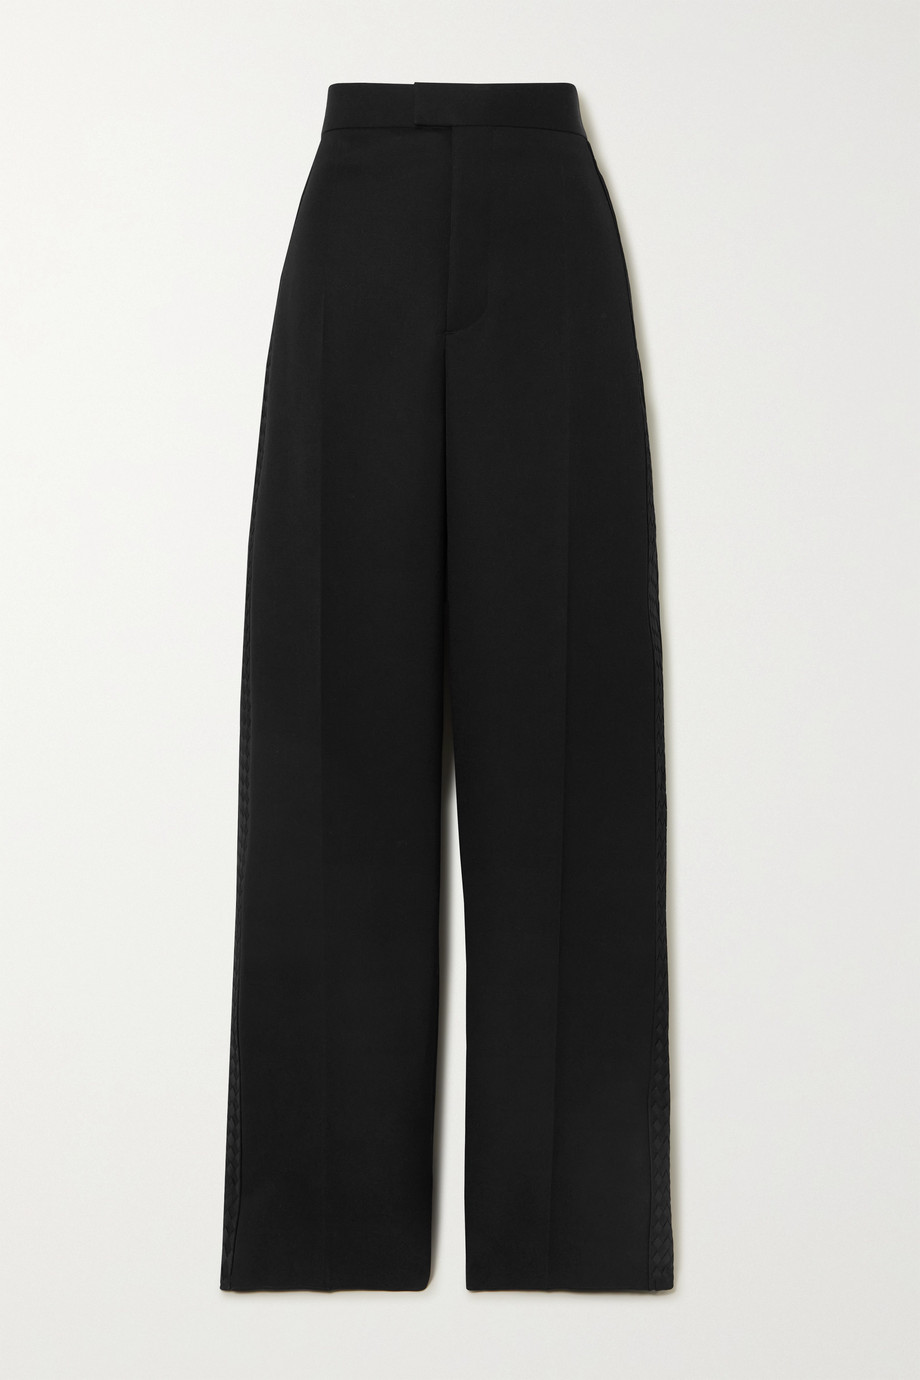 Bottega Veneta Intrecciato grain de poudre wool wide-leg pants